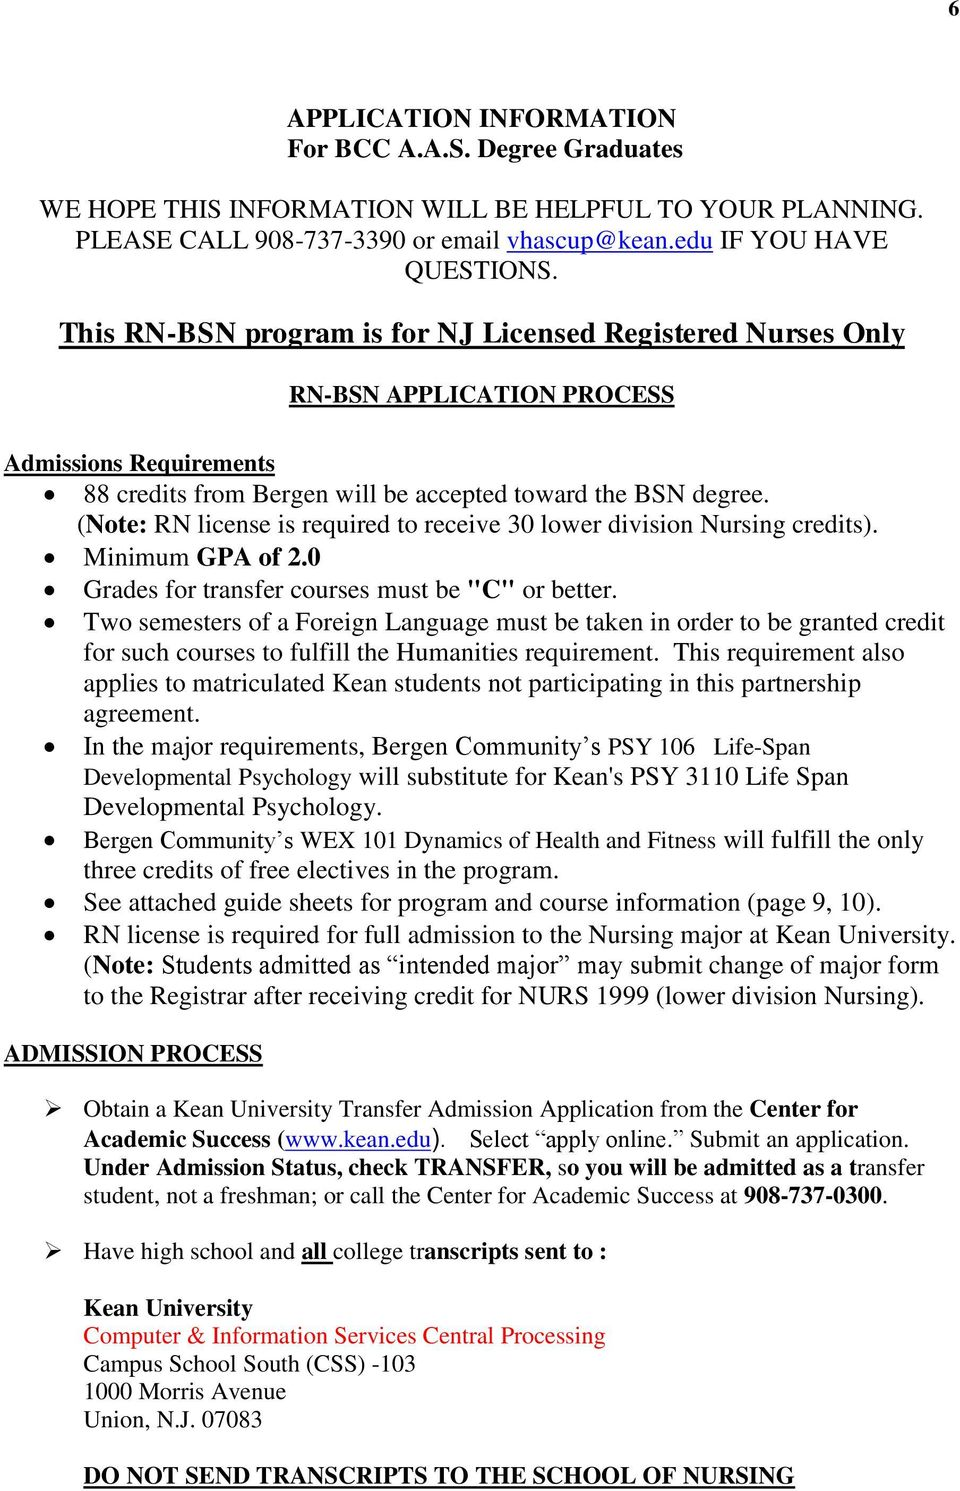 "(Note: RN license is required to receive 30 lower division Nursing credits). Minimum GPA of 2.0 Grades for transfer courses must be ""C"" or better."